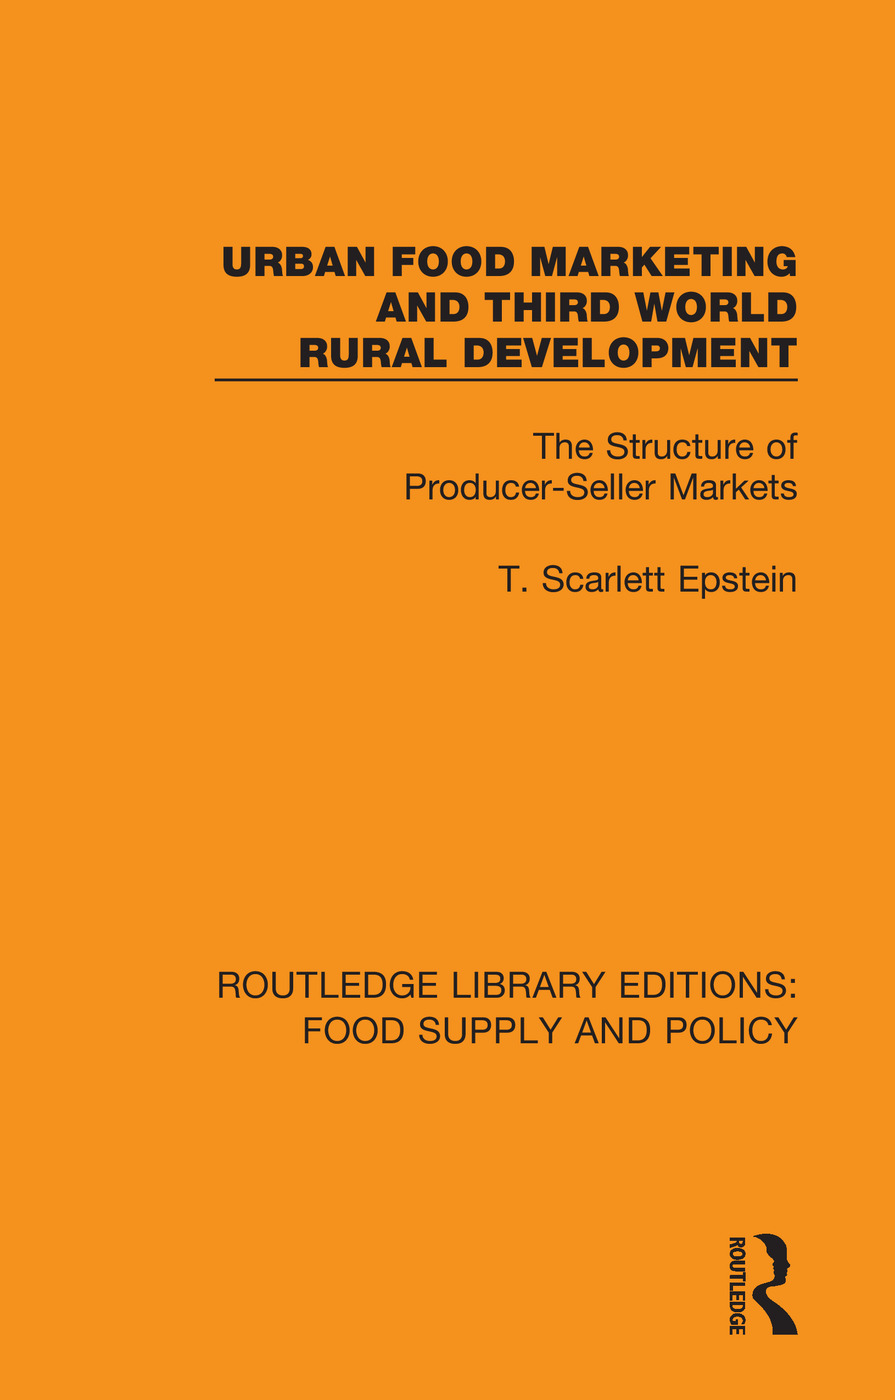 Urban Food Marketing and Third World Rural Development: The Structure of Producer-Seller Markets book cover